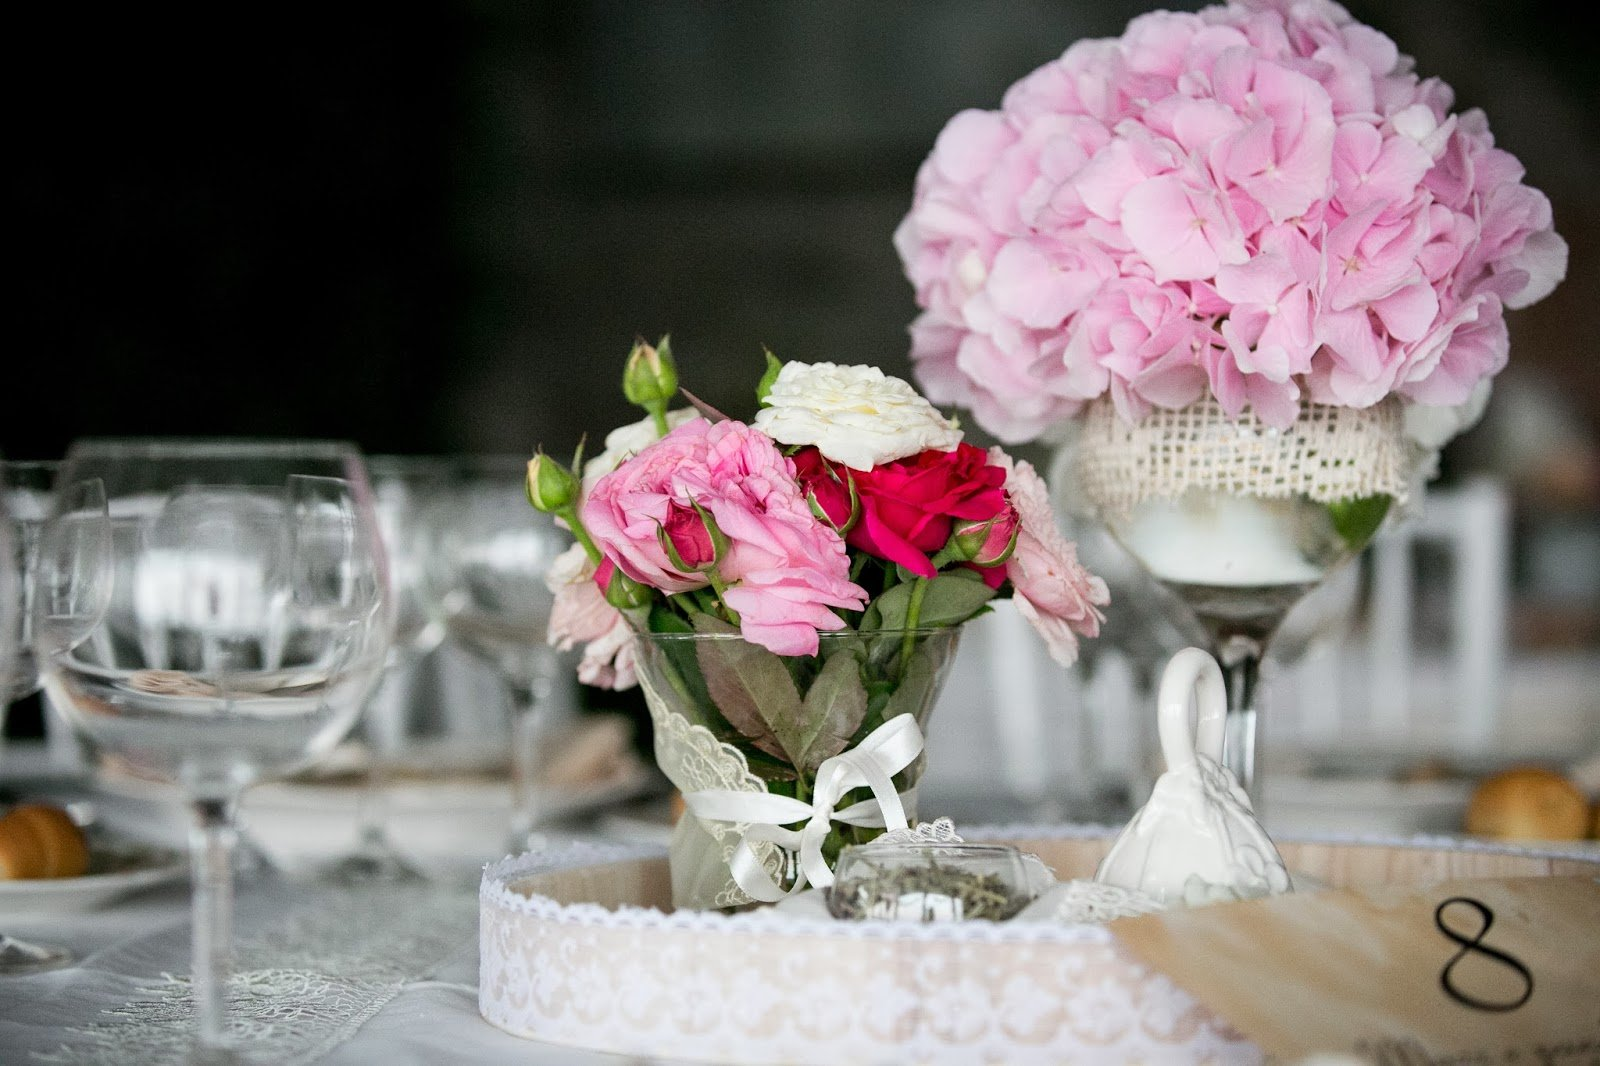 Matrimonio tra il vintage e il country chic - image Bianca_e_Nobile0878 on http://www.designedoo.it